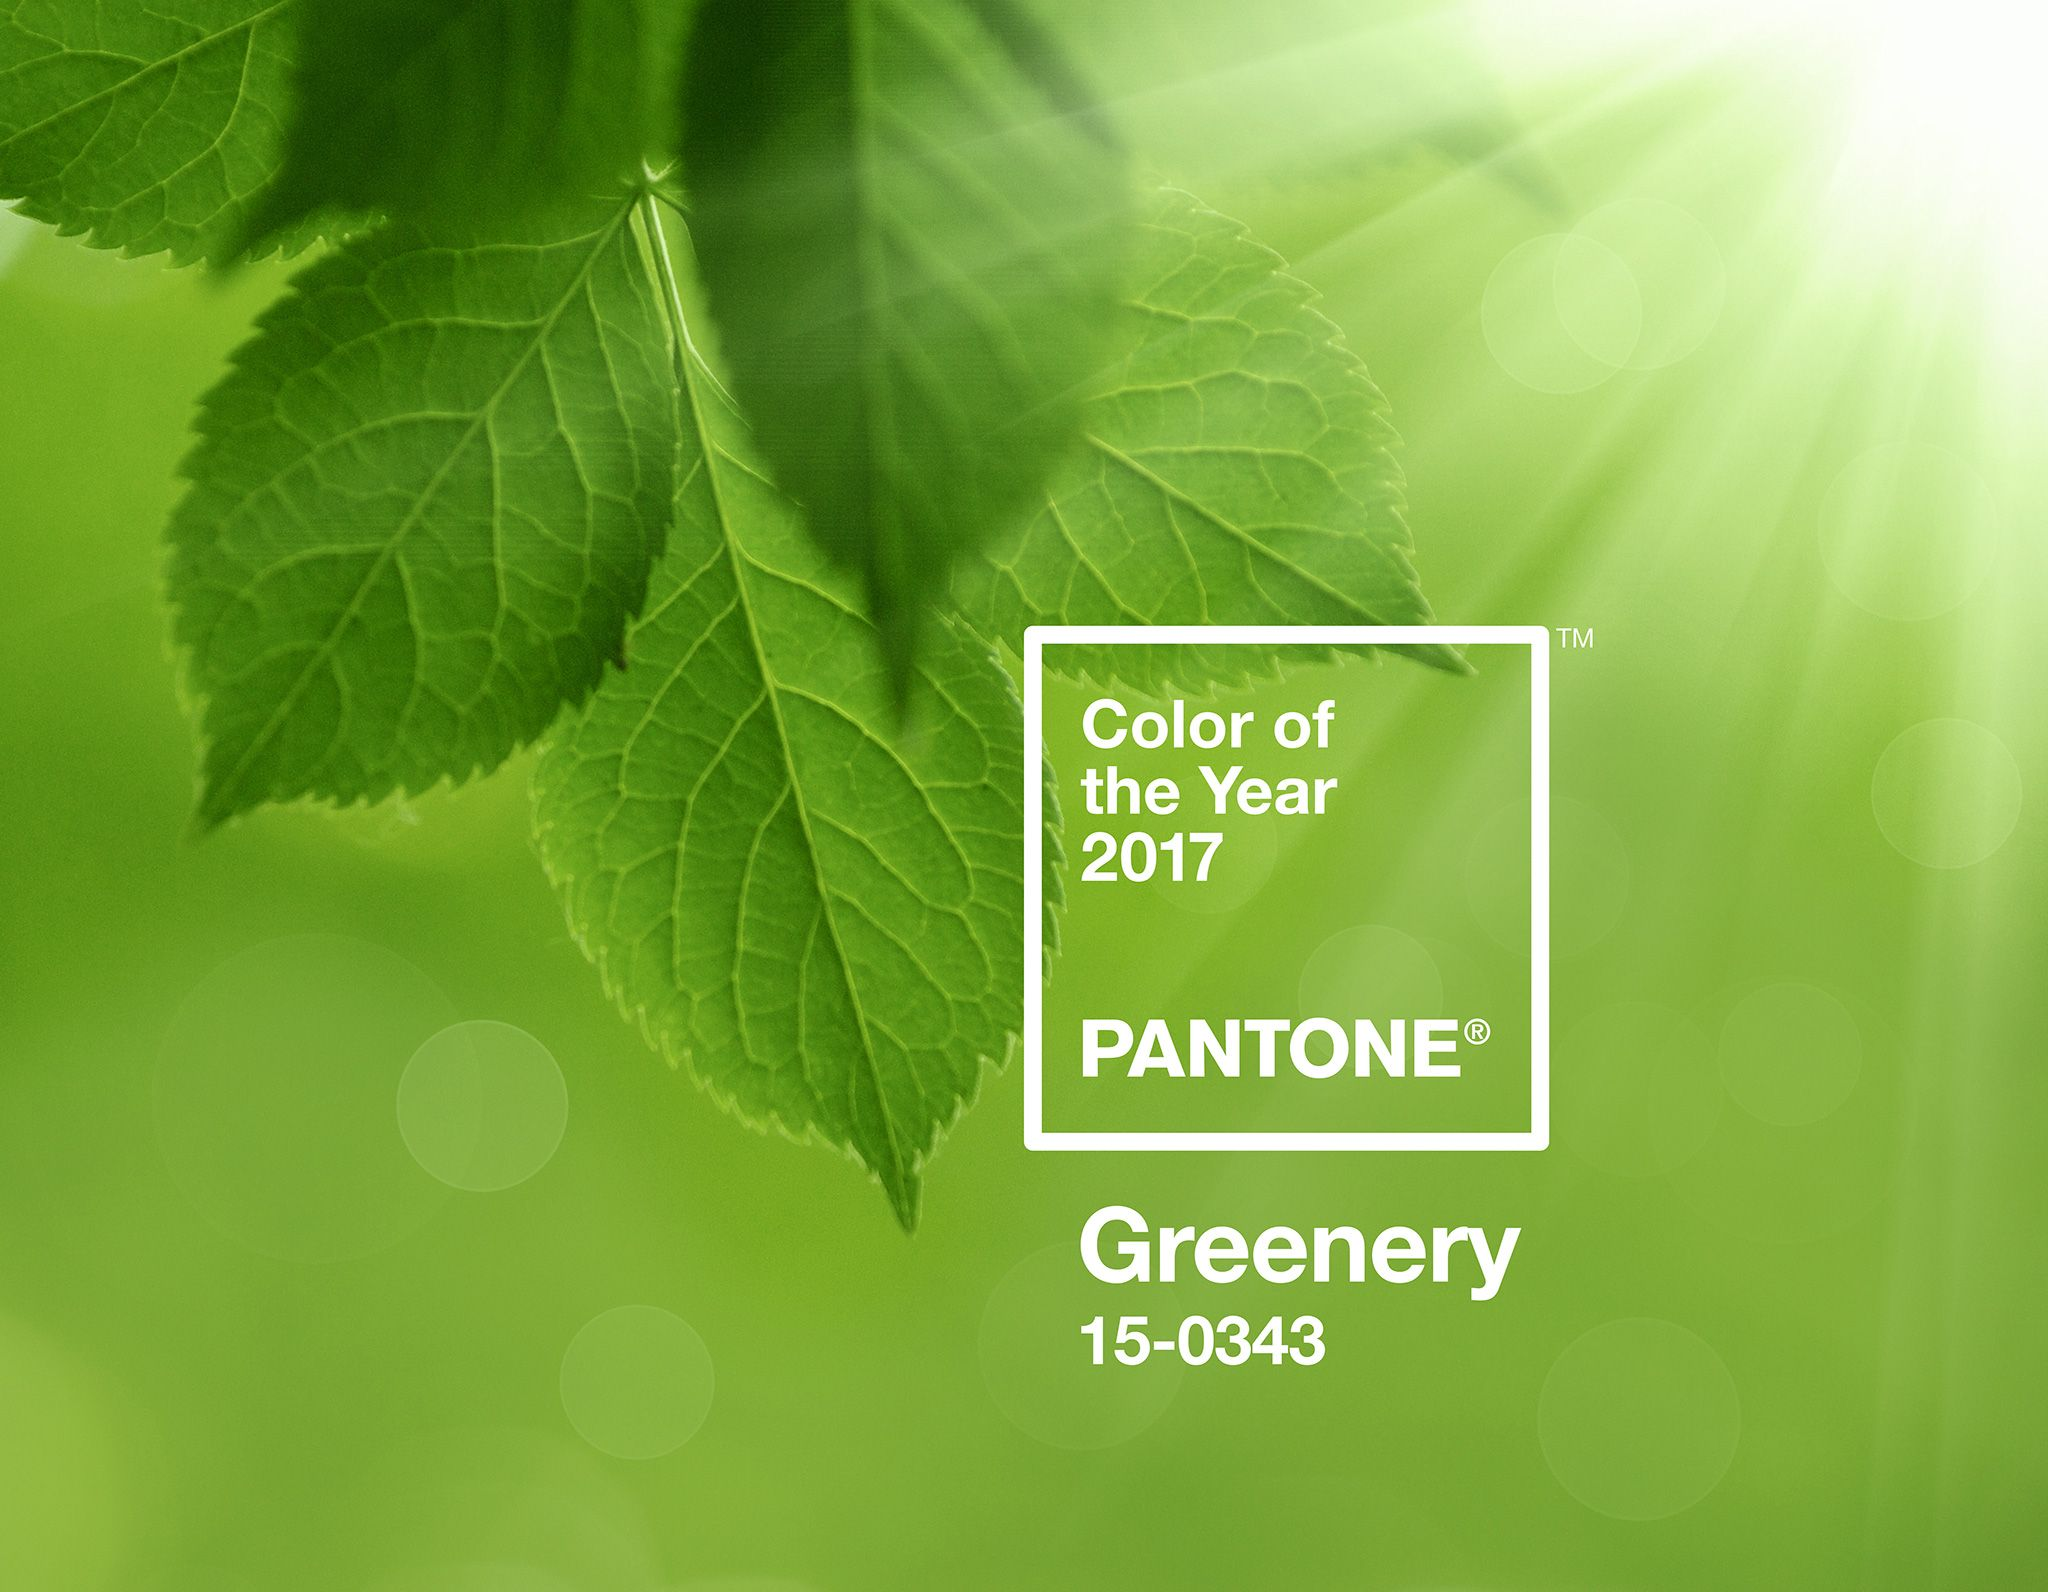 pantone color of the year 2017 15 0343 greenery pms to cmyk converter 2020